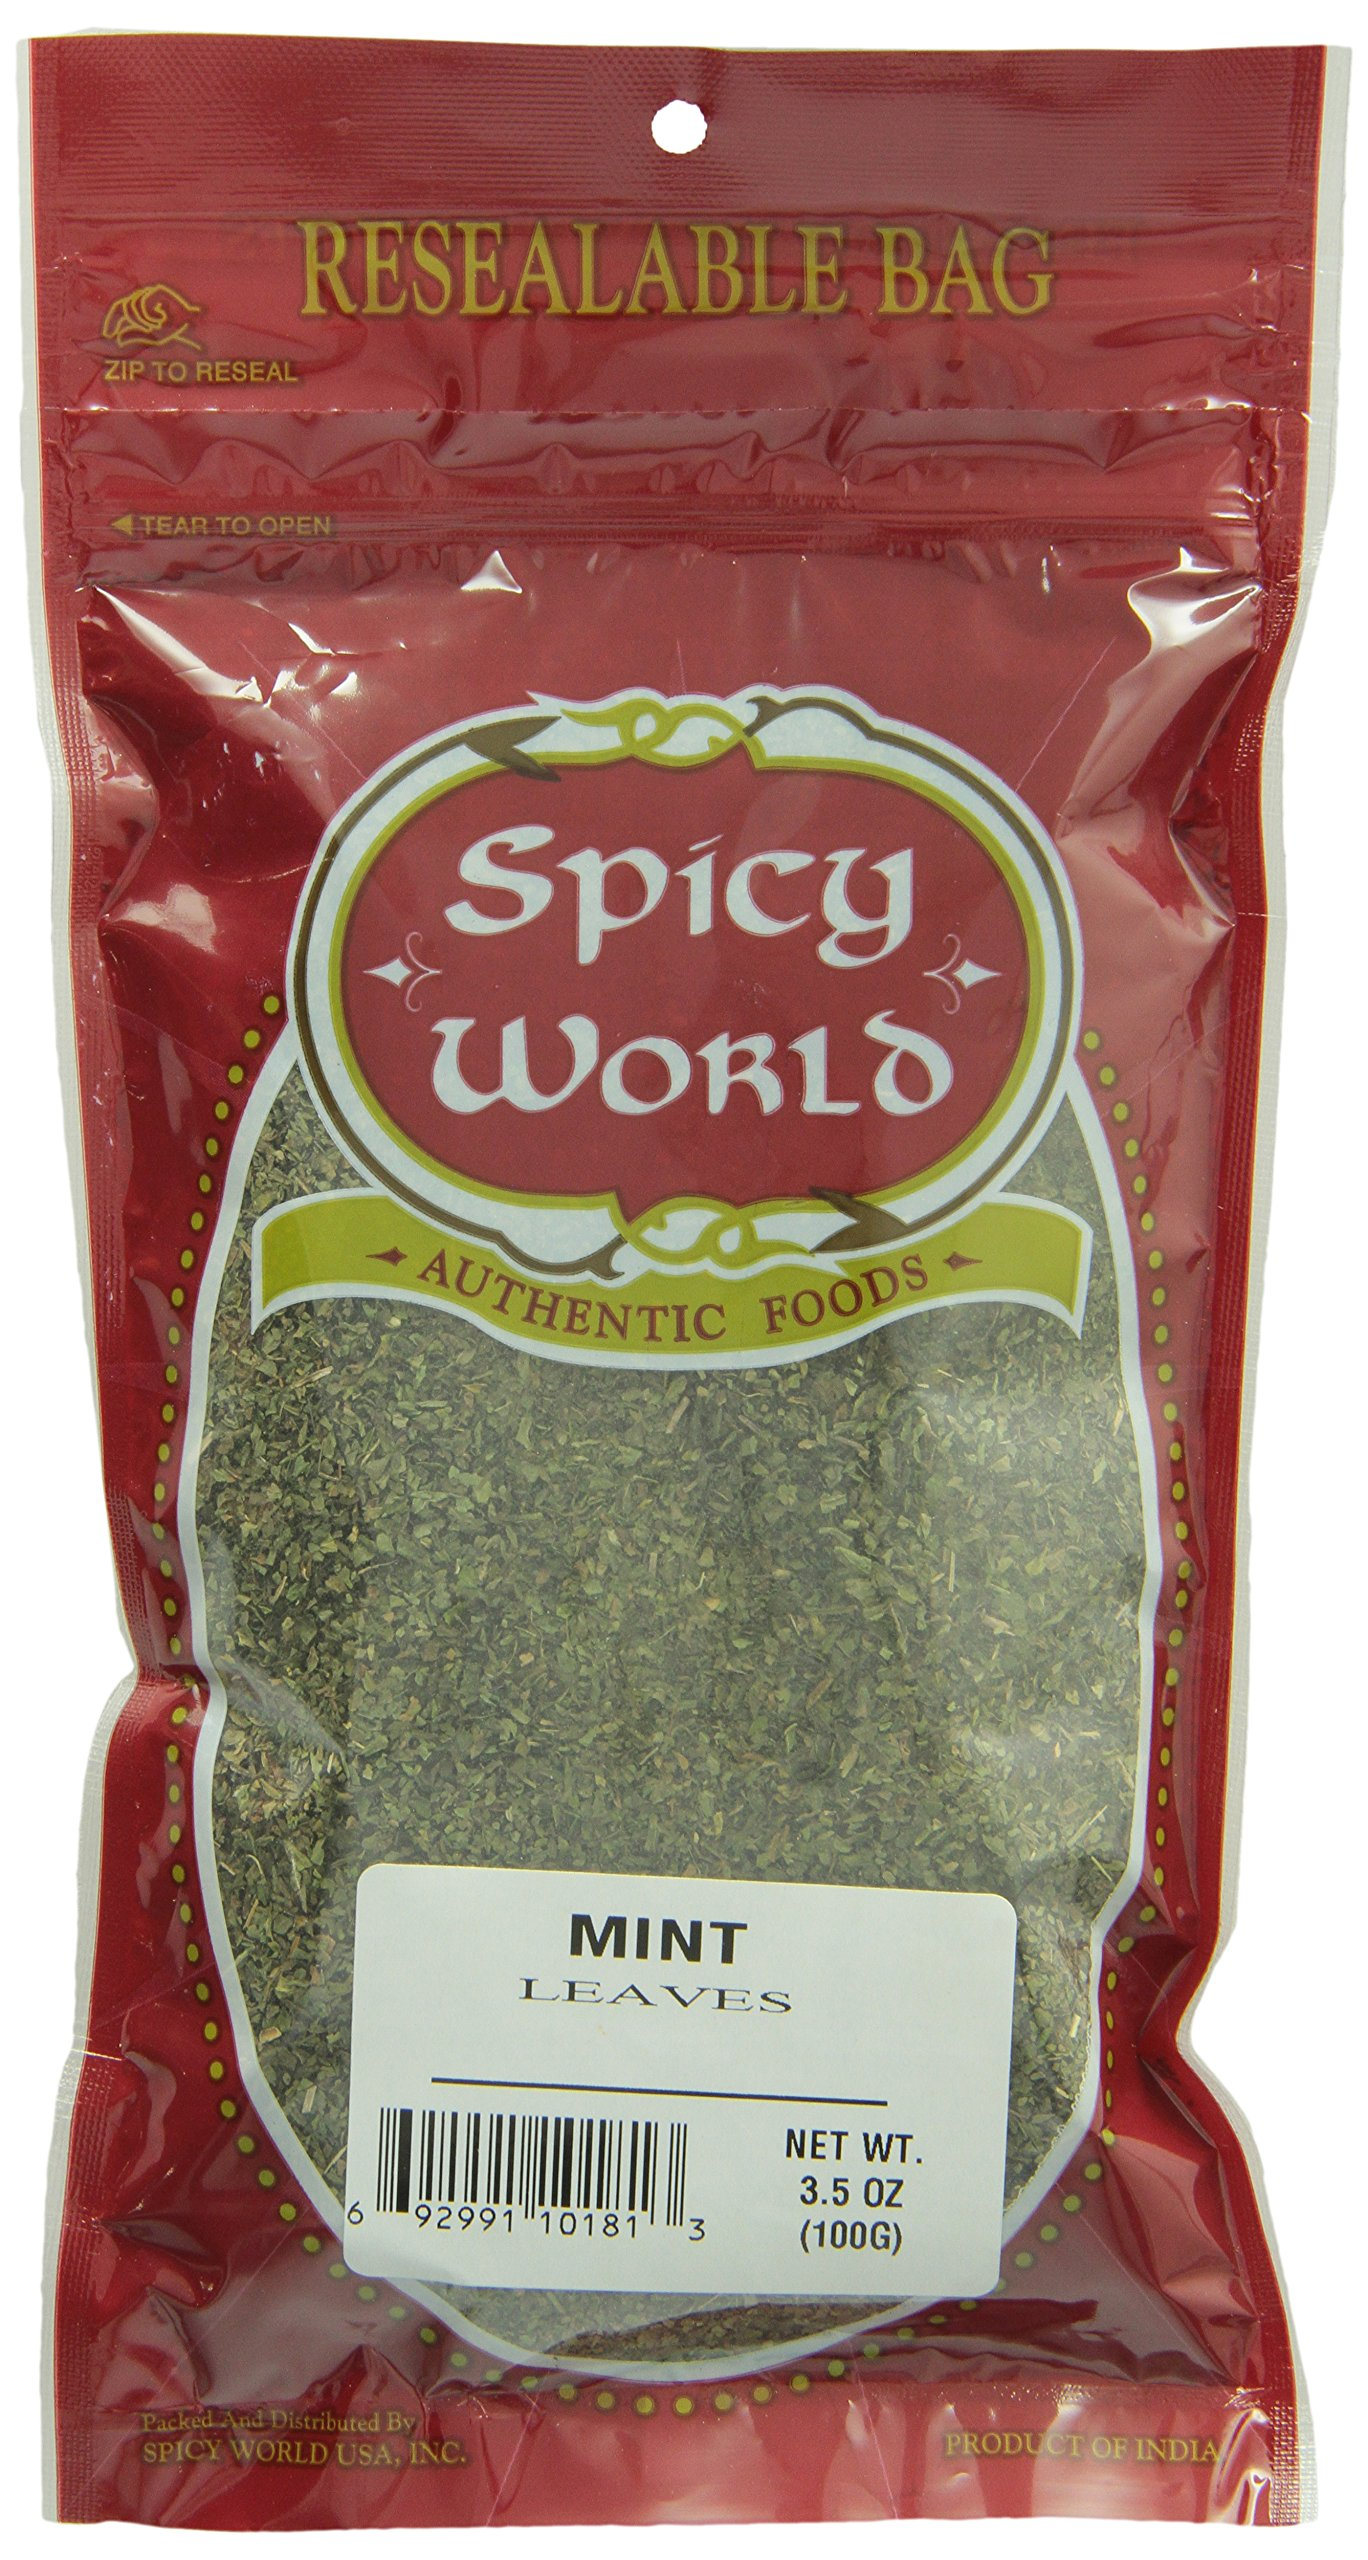 Spicy World Crushed Mint Leaves, 3.5-Ounce Bags (Pack of 6)